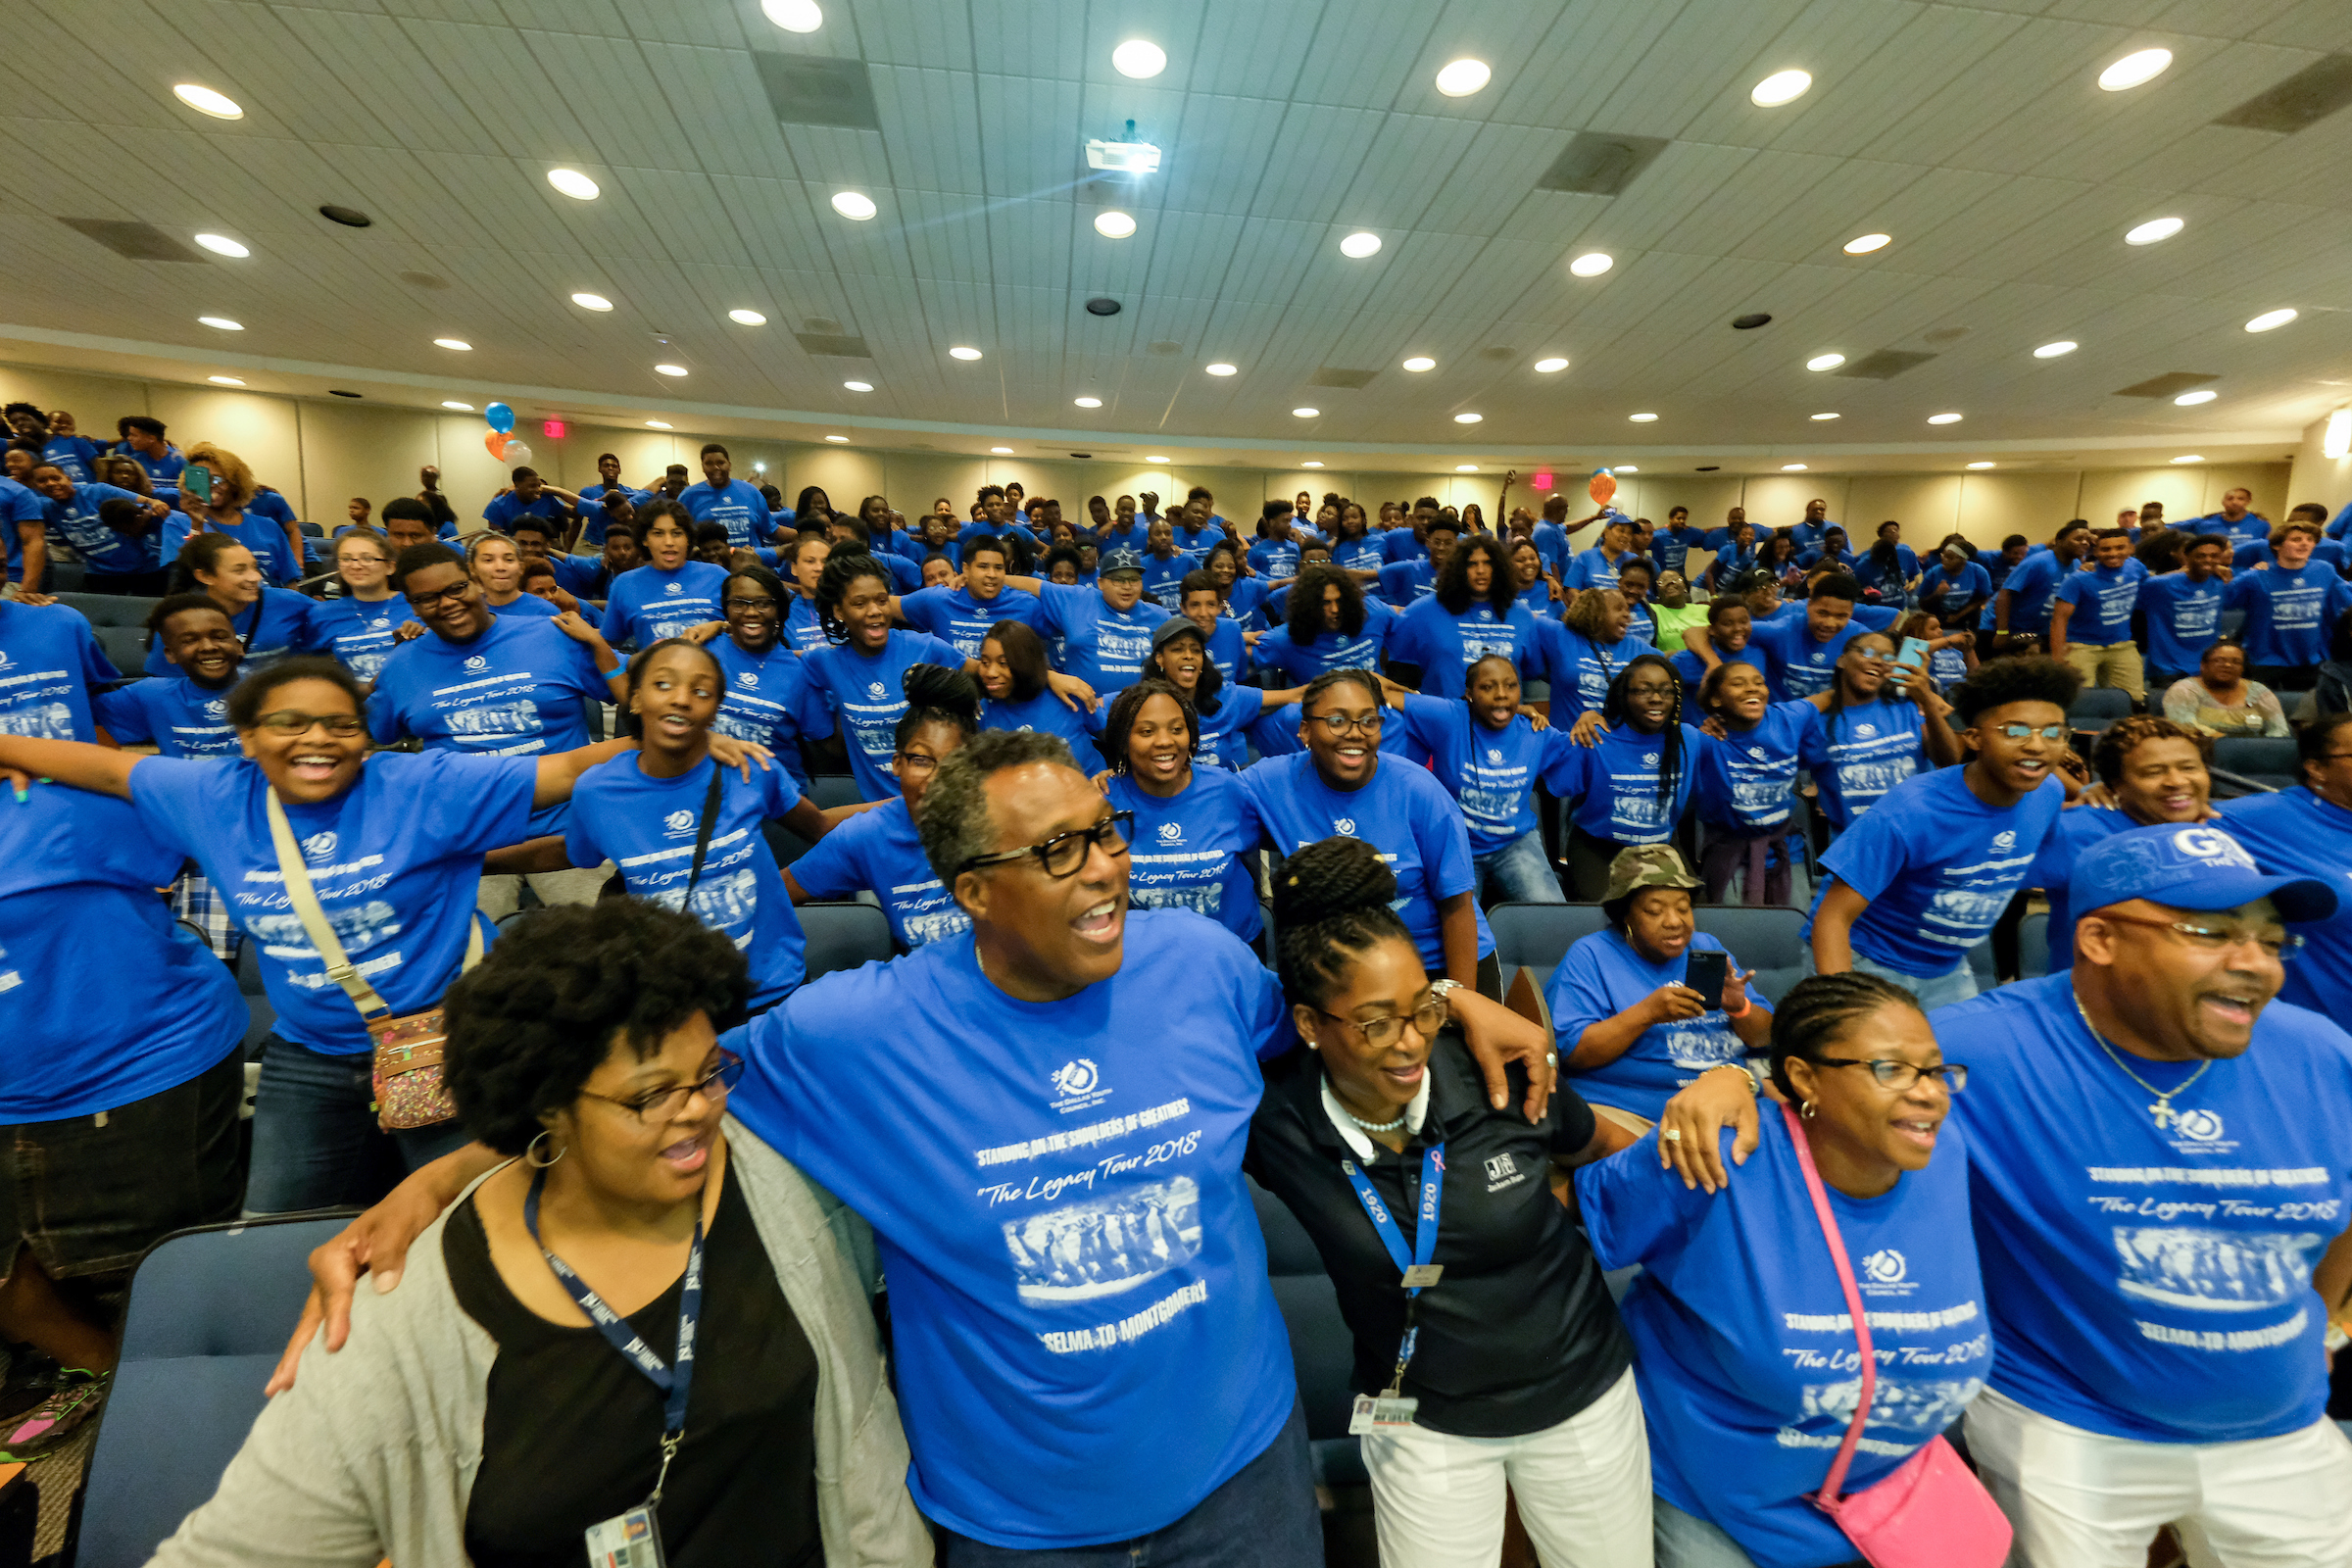 The Dallas Legacy Tour, consisting of over 200 high school students and 40 chaperones, stopped at Jackson State University so students could learn more about the HBCU. (Photo by Charles A. Smith/JSU)